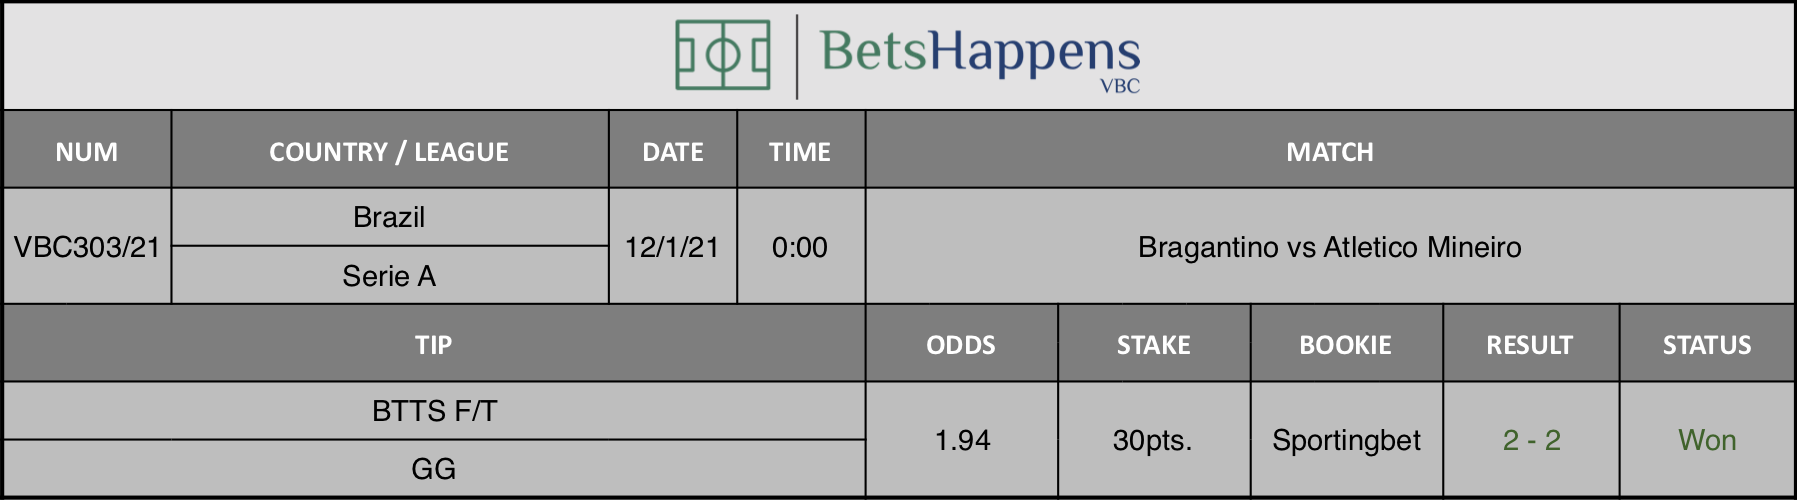 Results of our tip for the Bragantino vs Atletico Mineiro  match where BTTS F/T  GG is recommended.